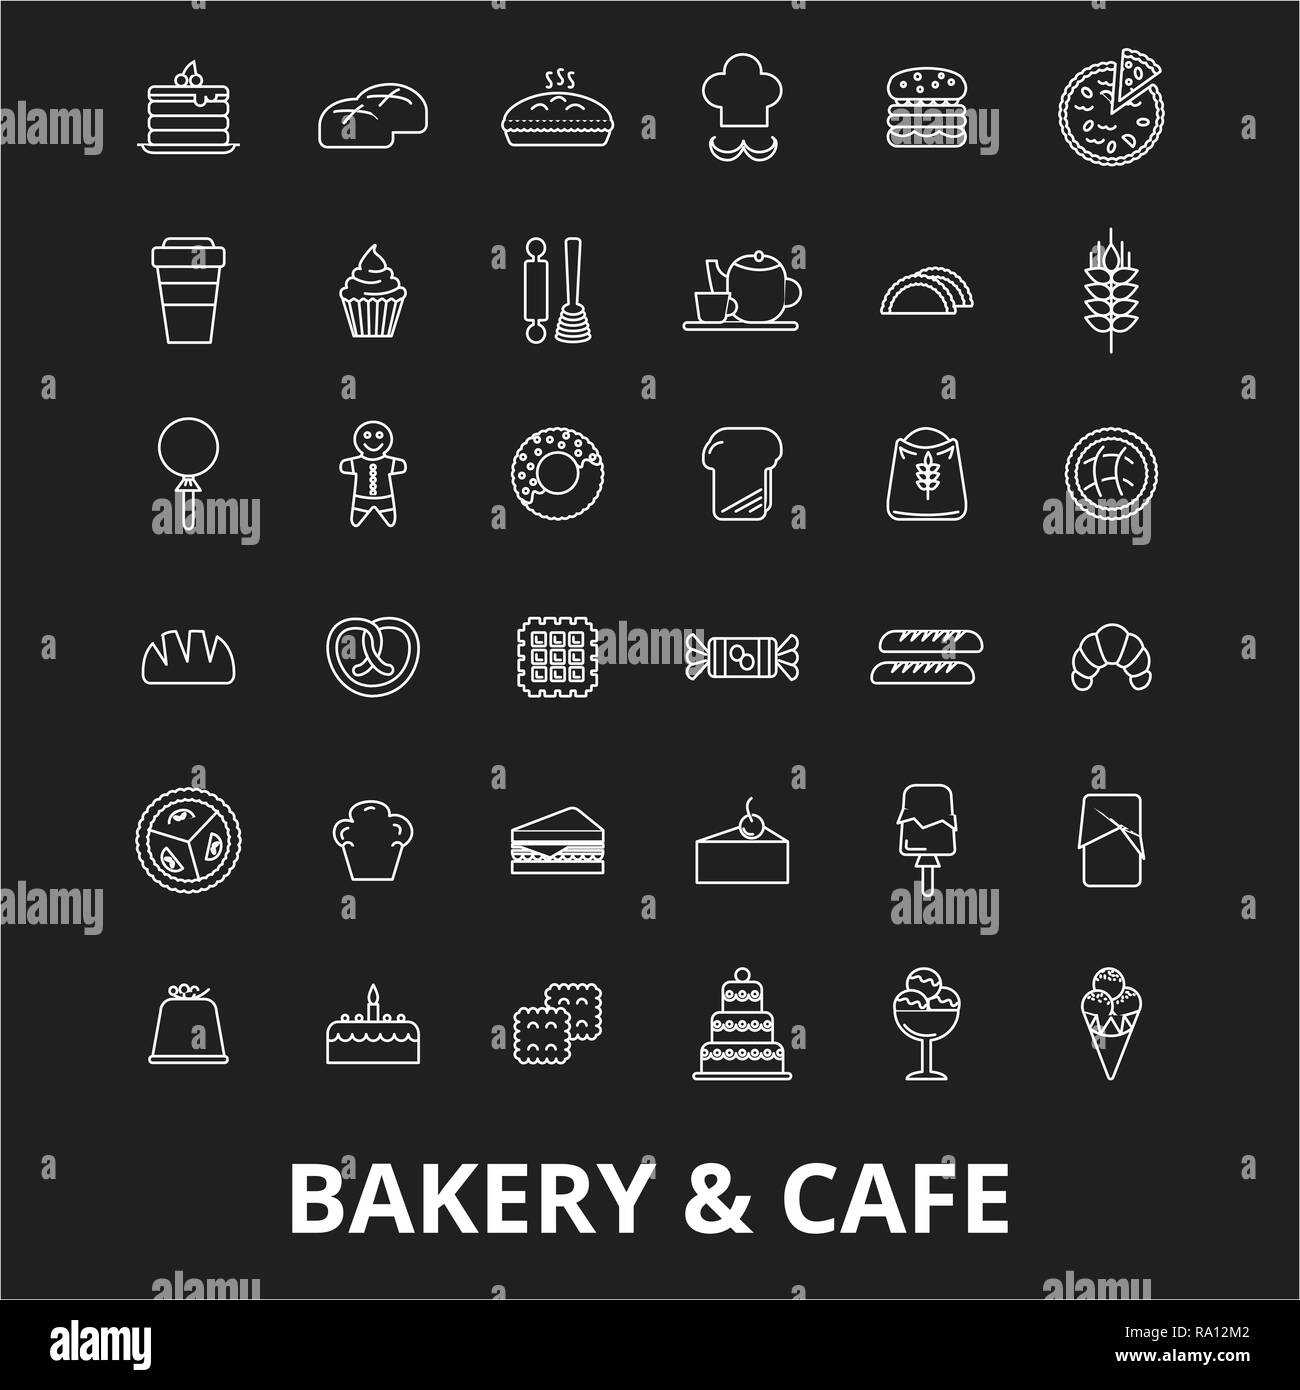 Bakery editable line icons vector set on black background. Bakery white outline illustrations, signs, symbols - Stock Image